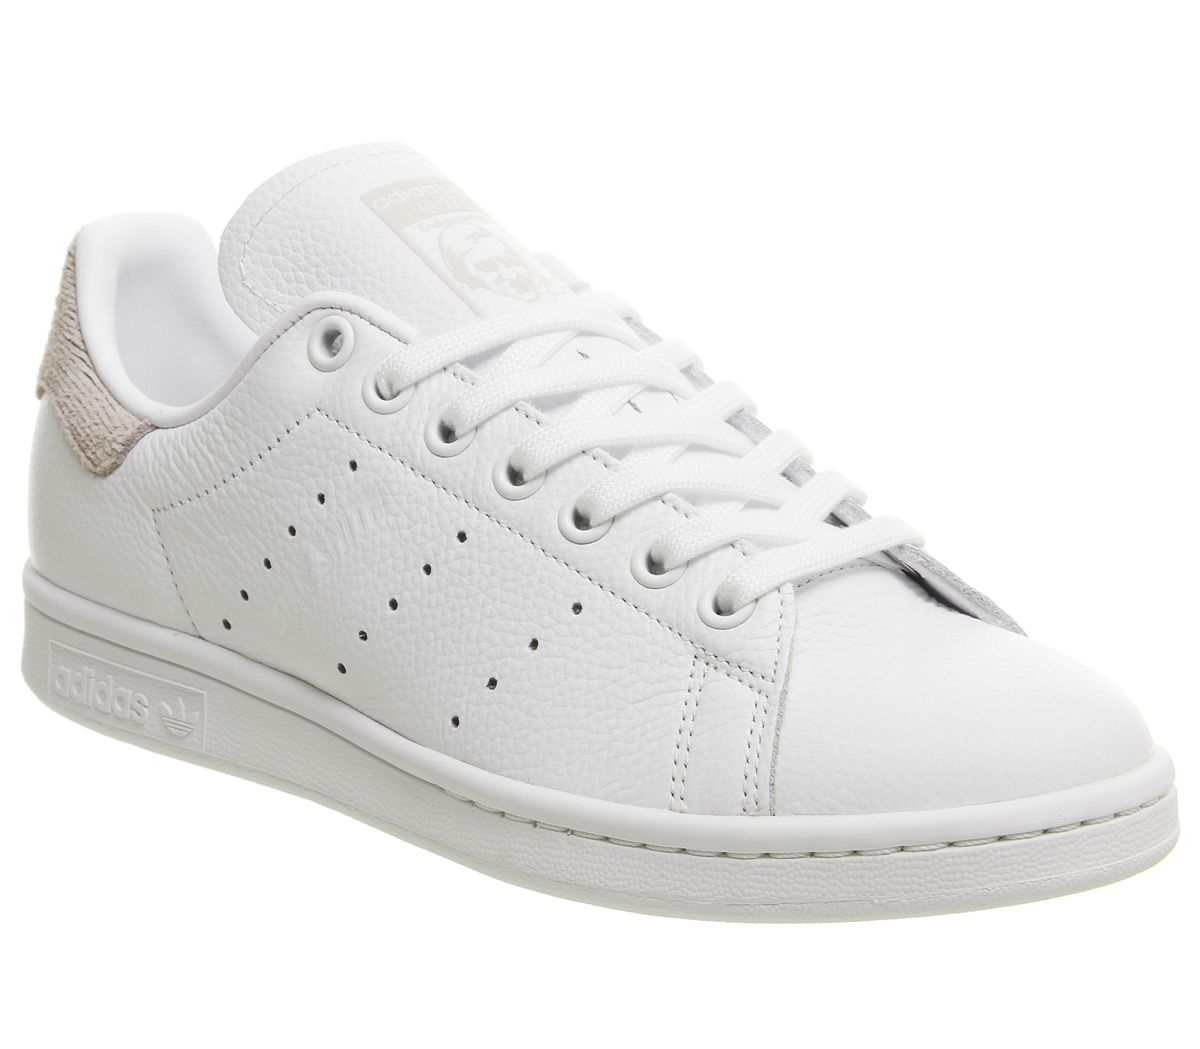 huge discount 2fc51 23eee Stan Smith Trainers